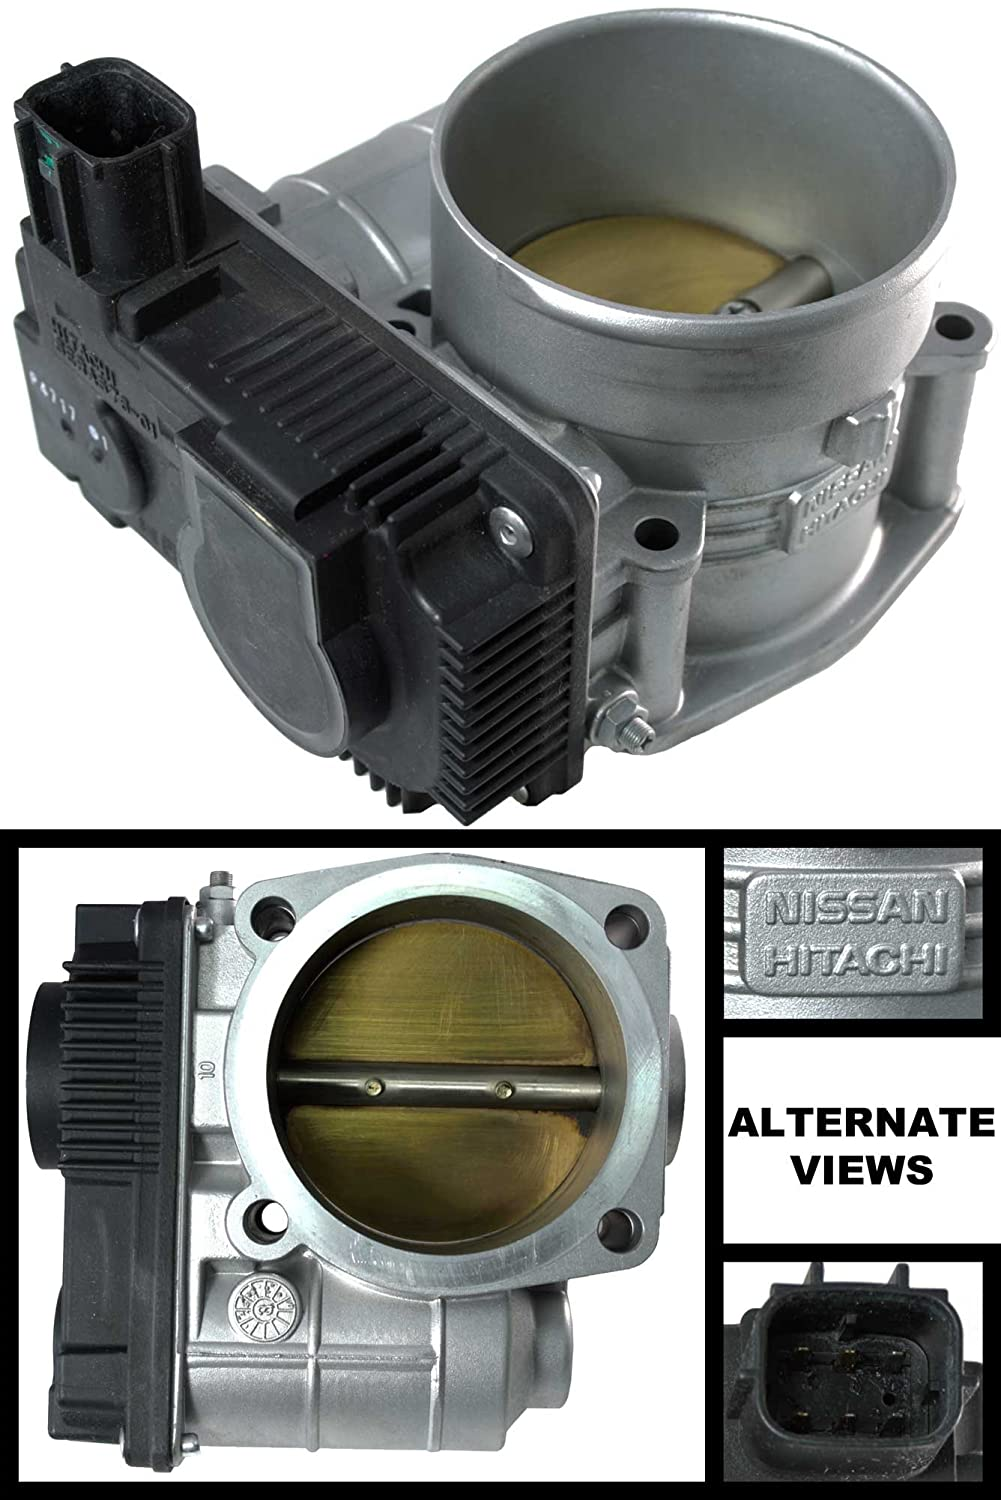 APDTY 161198J103 Electronic Throttle Body Assembly Fits 3.5L V6 Engine On 03-06 Nissan 350Z 02-06 Altima 02-08 Maxima 03-07 Murano 04-09 Quest 03-08 Infiniti FX35 03-06 G35 02-04 I35 & 06-08 M35